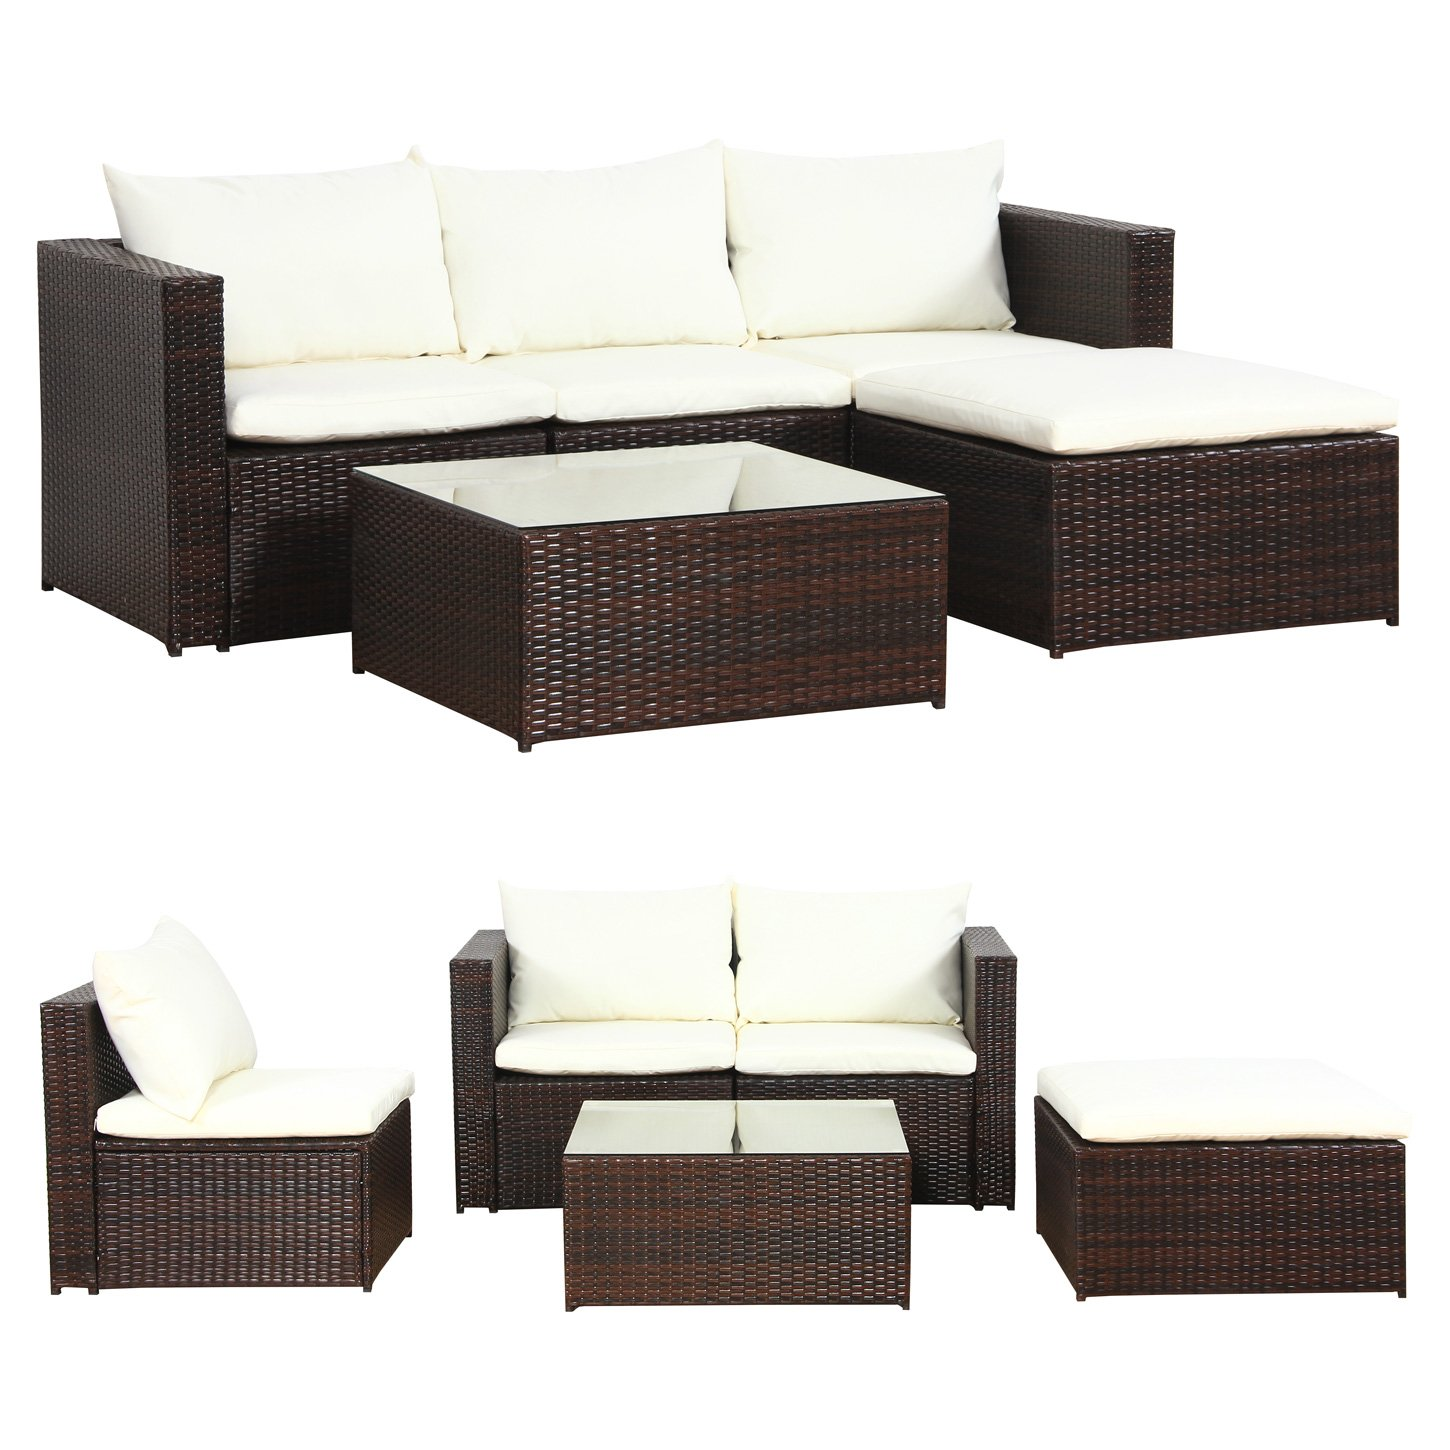 malaga poly rattan braun gartenm bel sitzgruppe essgruppe gartenset g nstig online kaufen. Black Bedroom Furniture Sets. Home Design Ideas